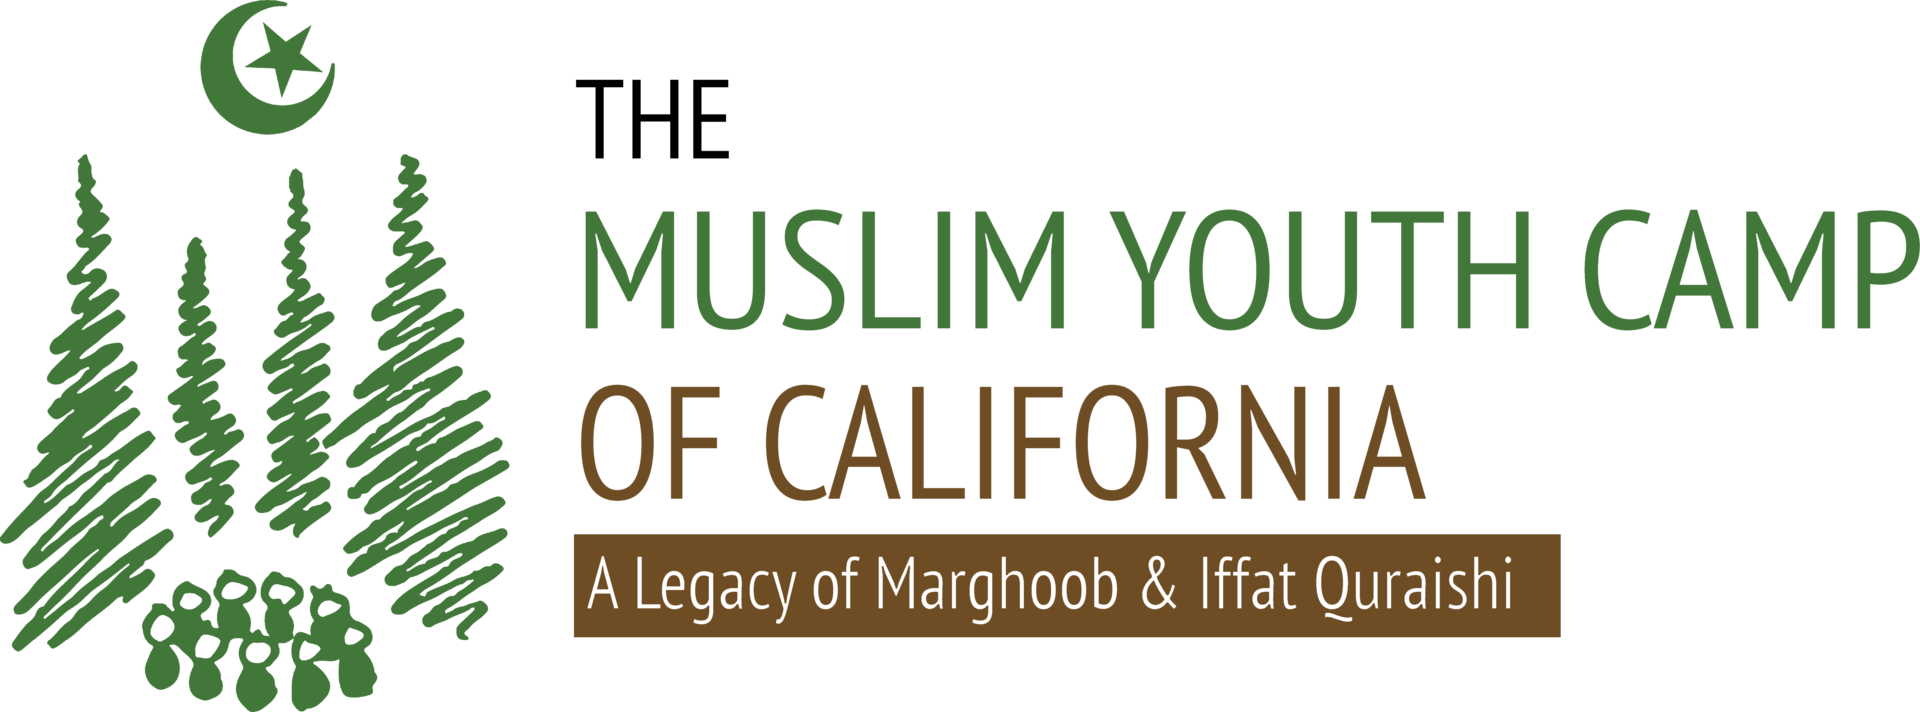 Muslim Youth Camp of California